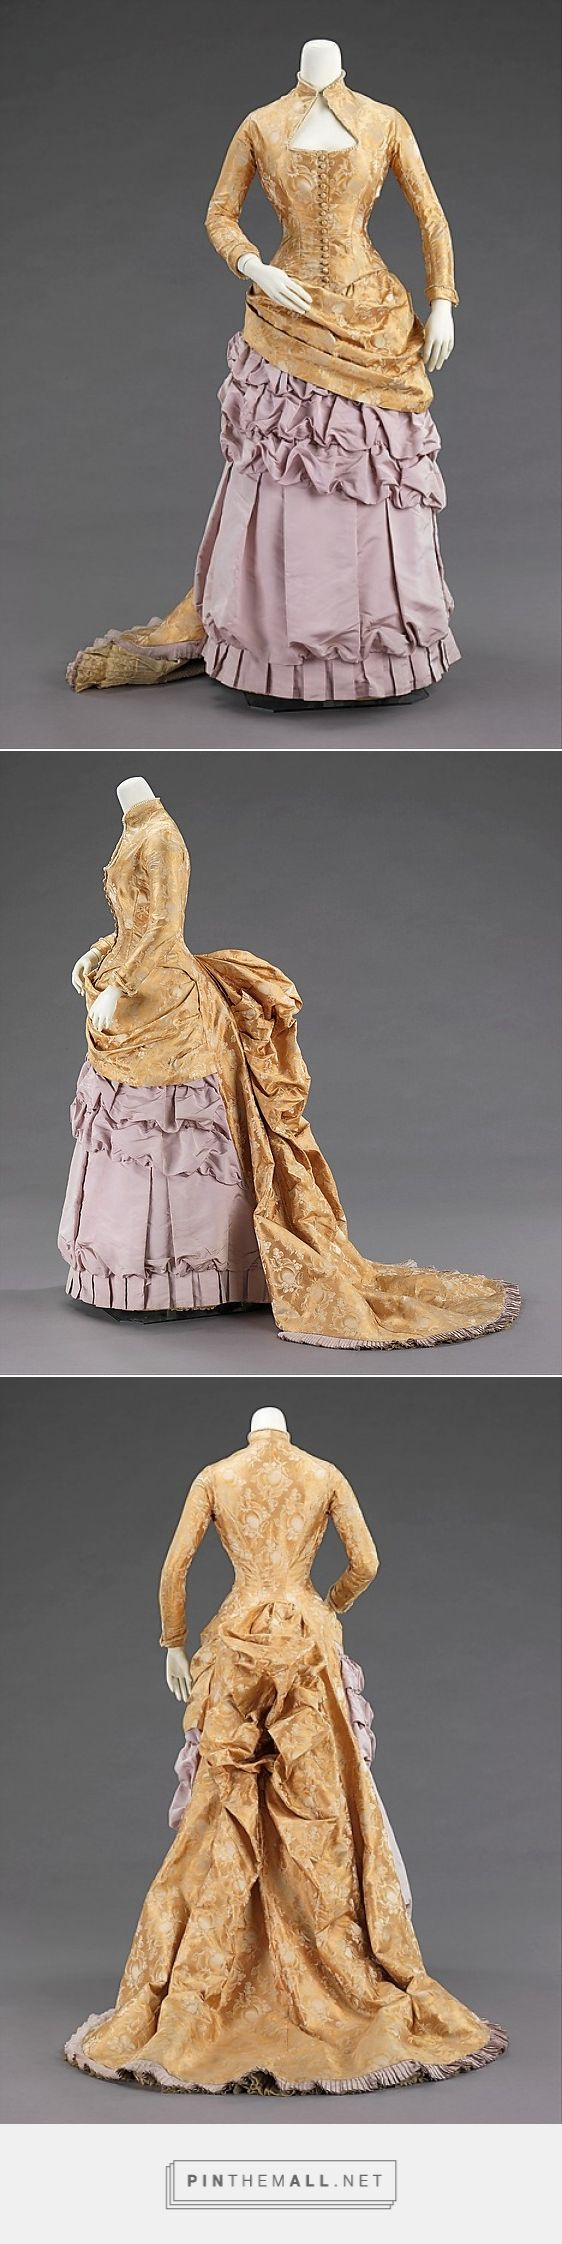 Evening dress by Wexler & Abraham ca. 1880 American | The Metropolitan Museum of Art